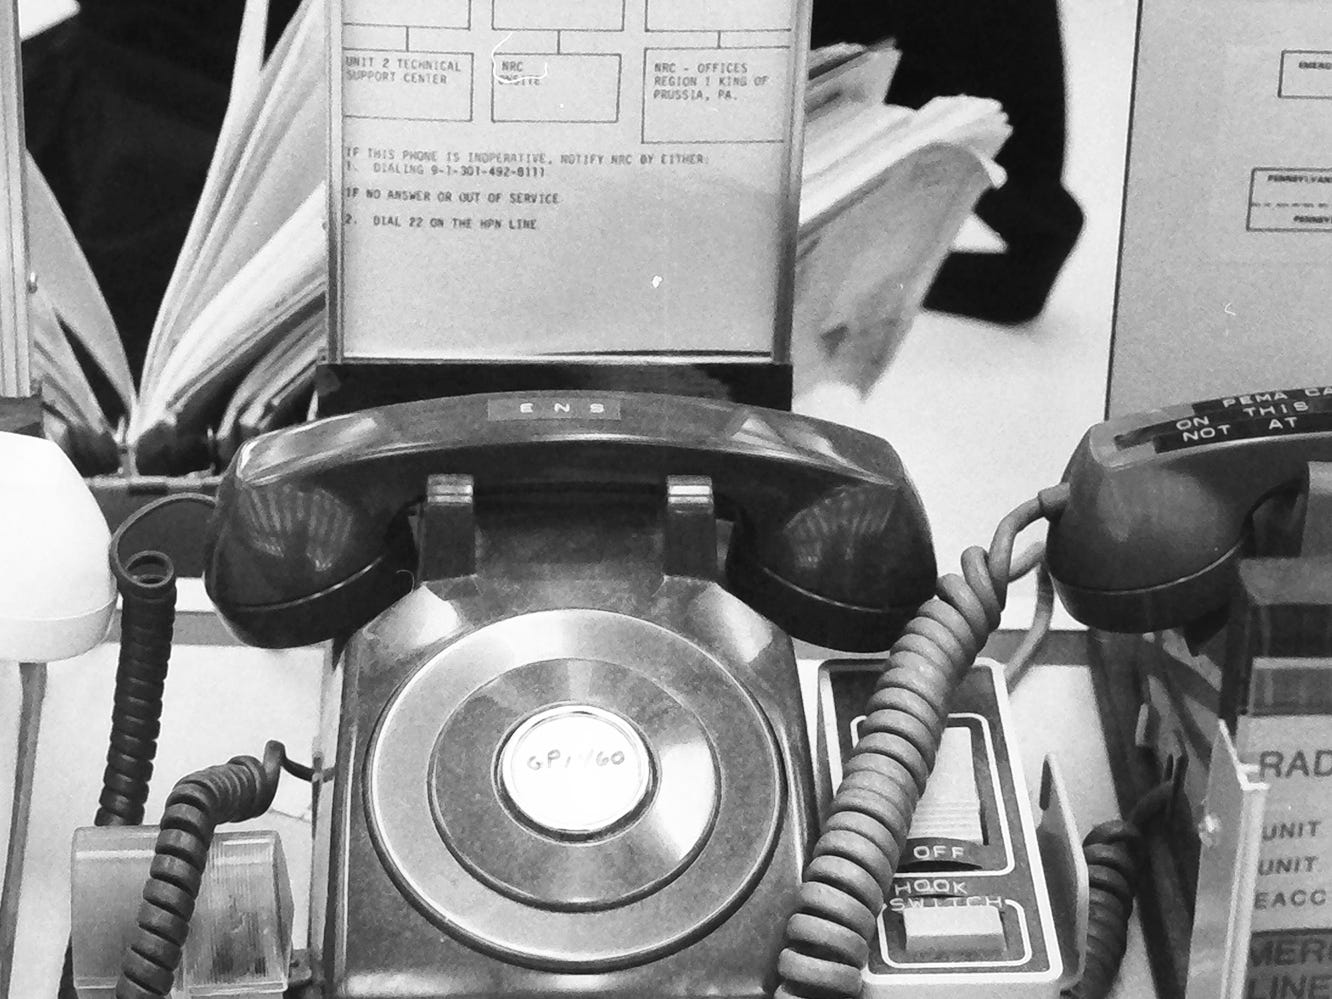 This is an undated photo of a phone used in the event of emergencies at the Three Mile Island power plant.